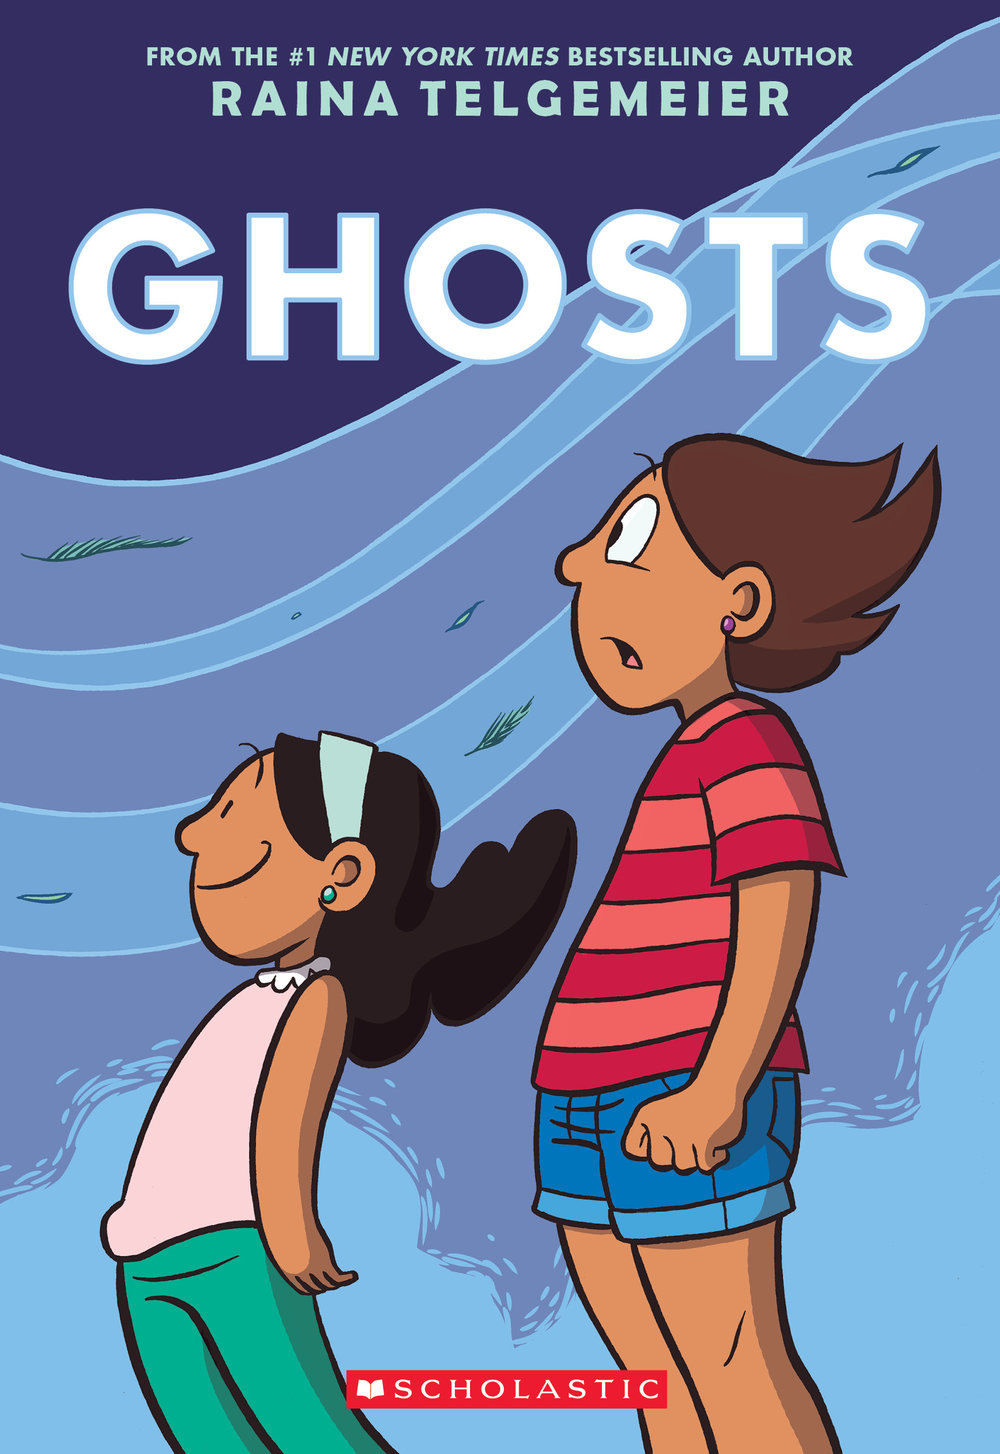 GHOSTS-Front-Cover.jpg